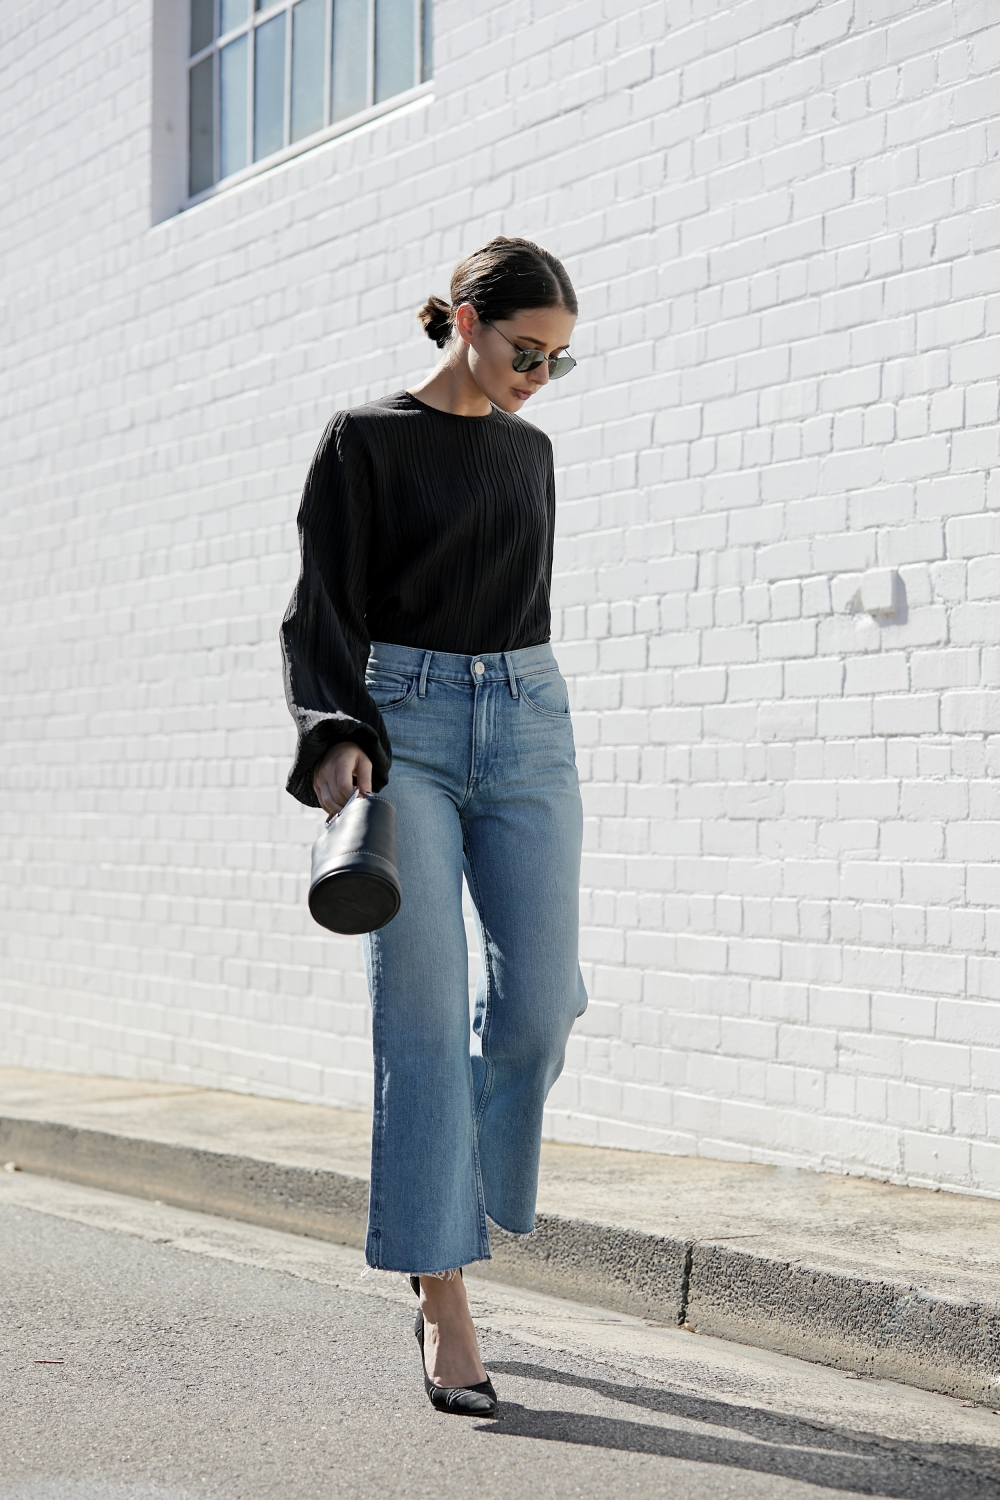 Stylish Under-$100 Denim Date Look — Harper & Harley Outfit Inspiration